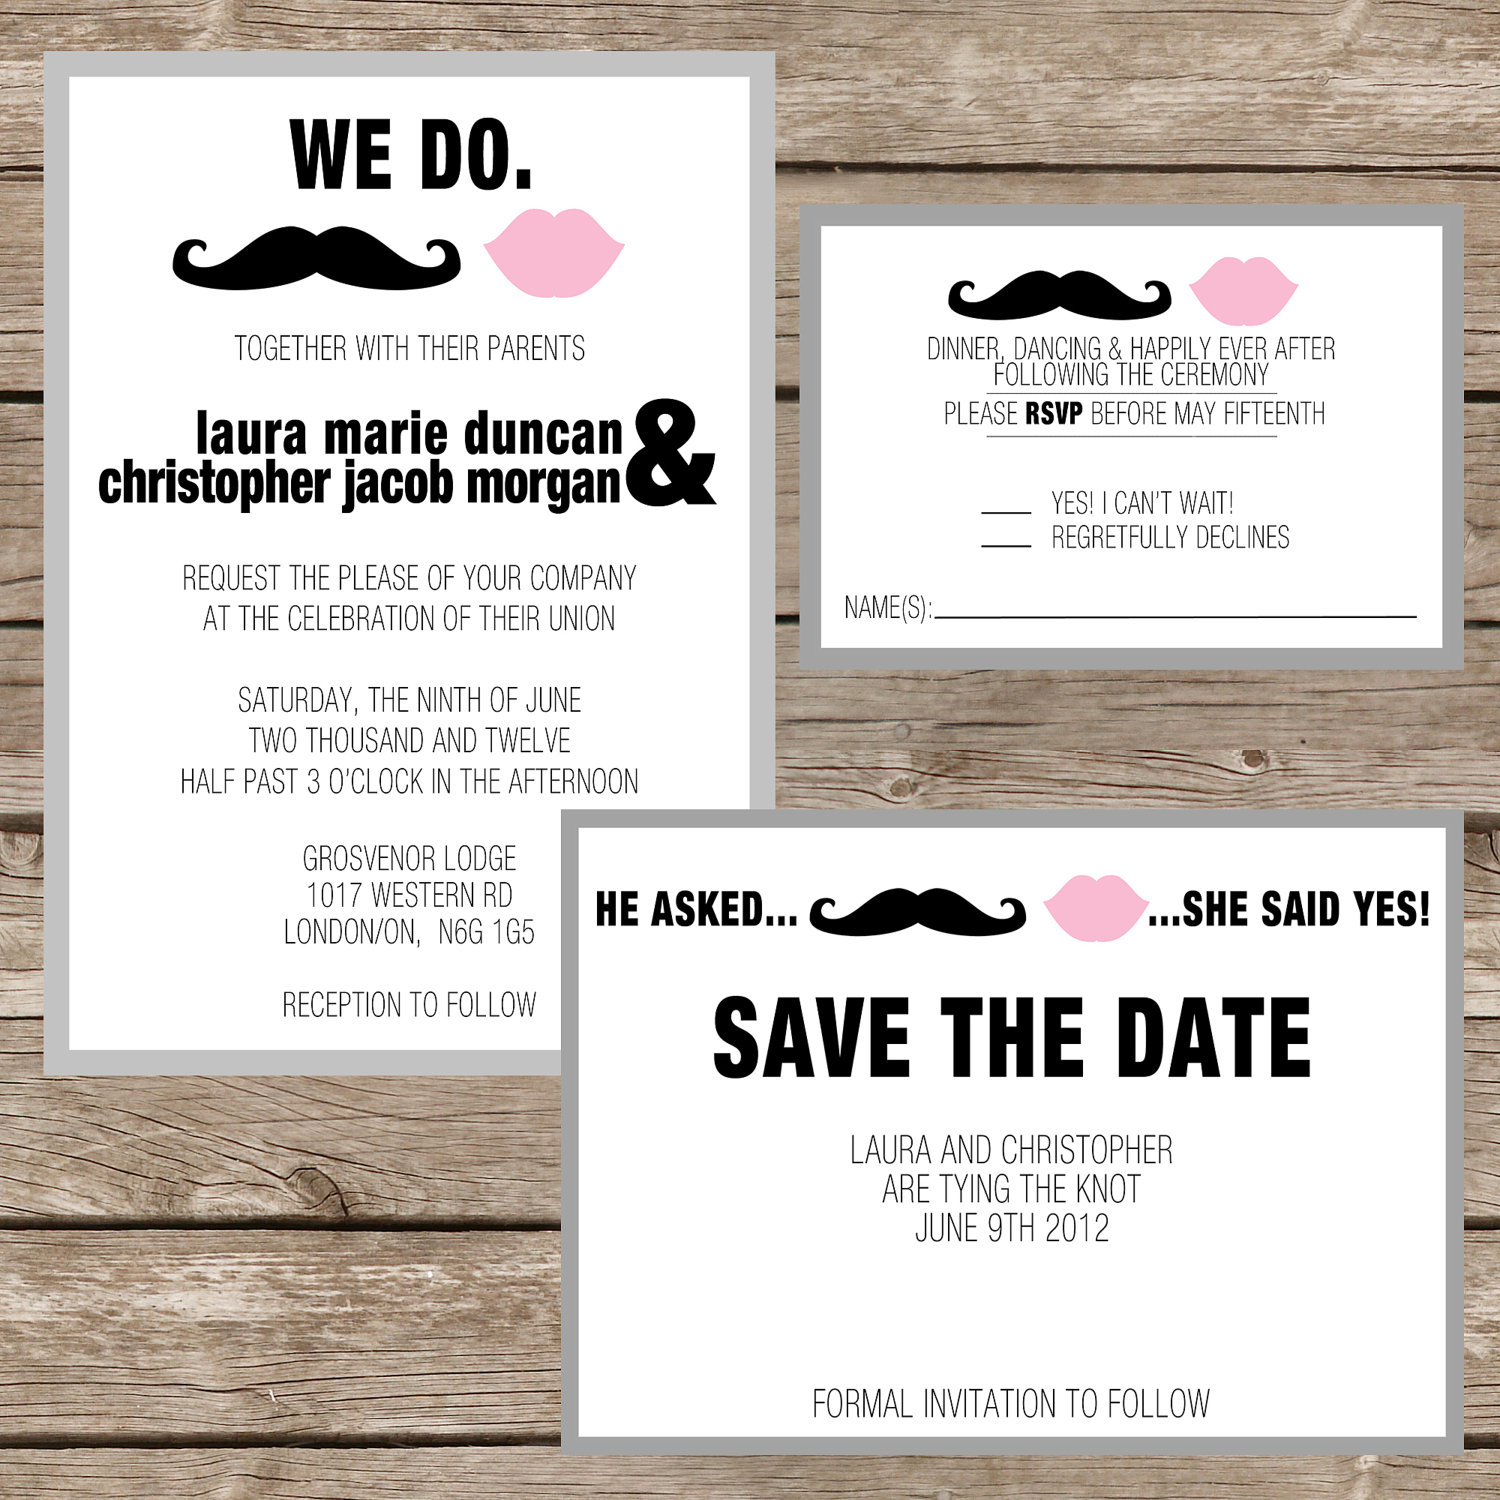 What To Include In Wedding Invitation Litoon August 2013 Monicamarmolfo Choice Image